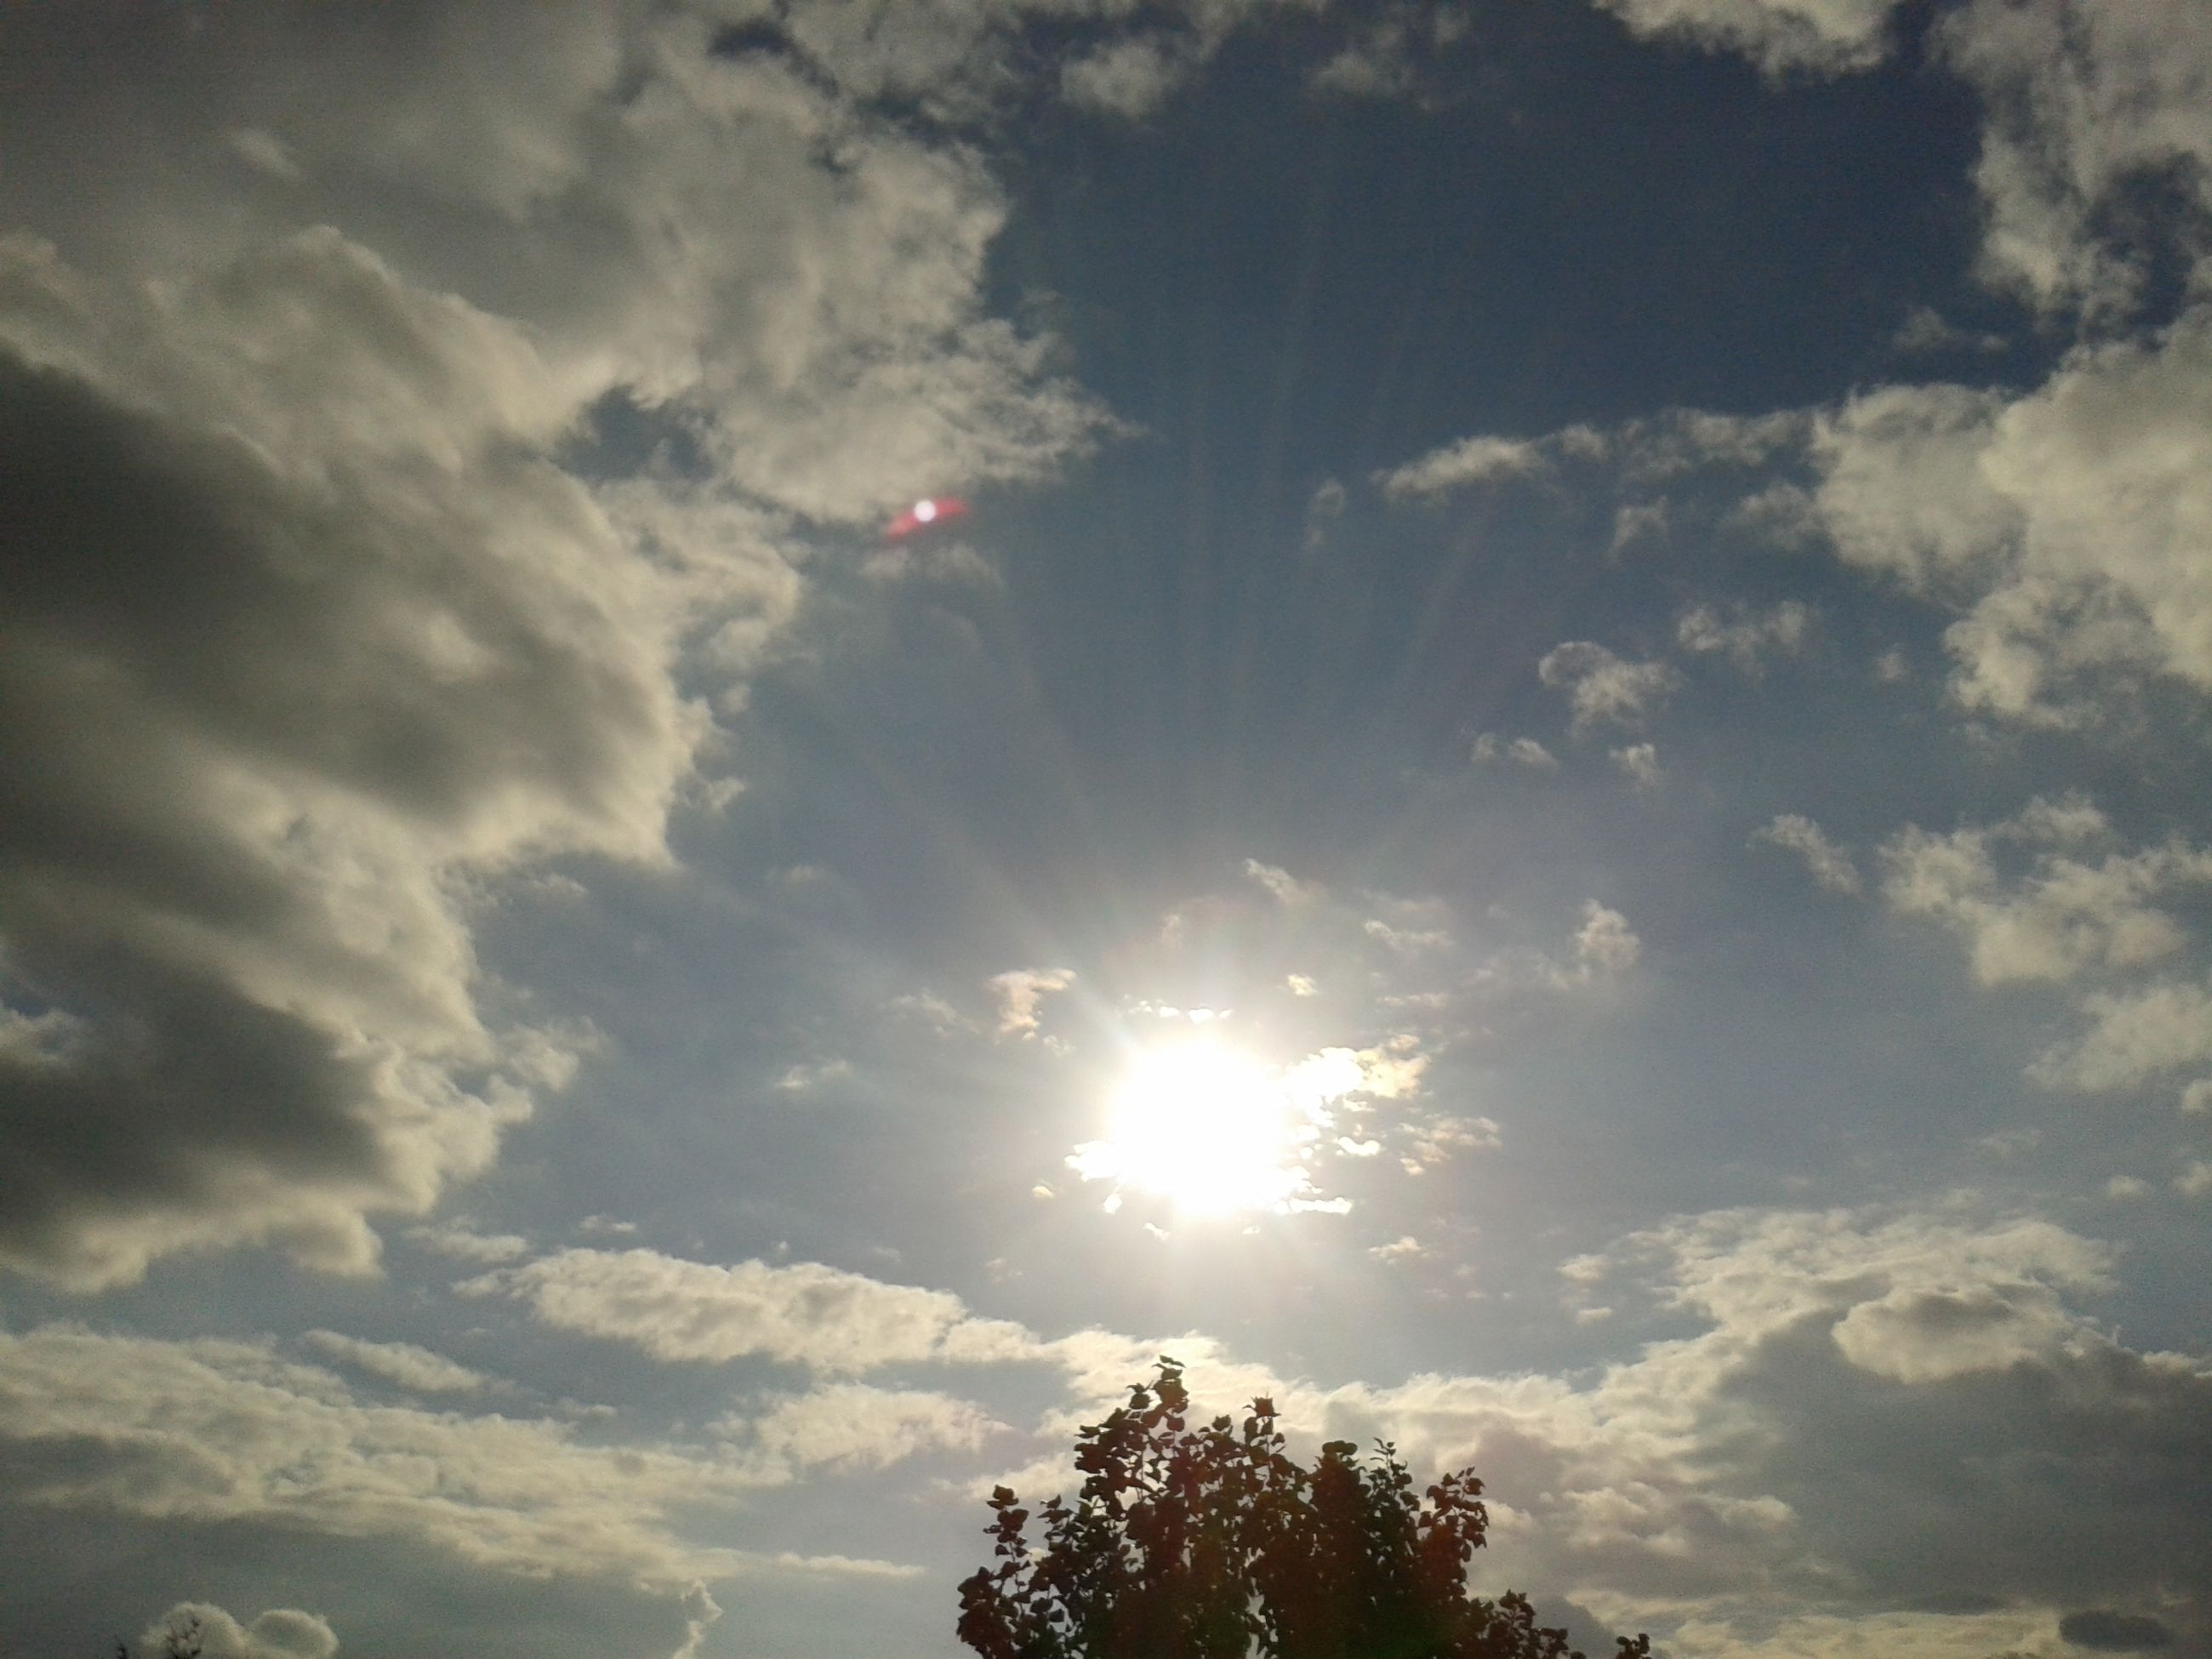 low angle view, sun, sky, tree, sunbeam, cloud - sky, sunlight, beauty in nature, tranquility, lens flare, silhouette, nature, scenics, tranquil scene, bright, cloud, cloudy, outdoors, idyllic, no people